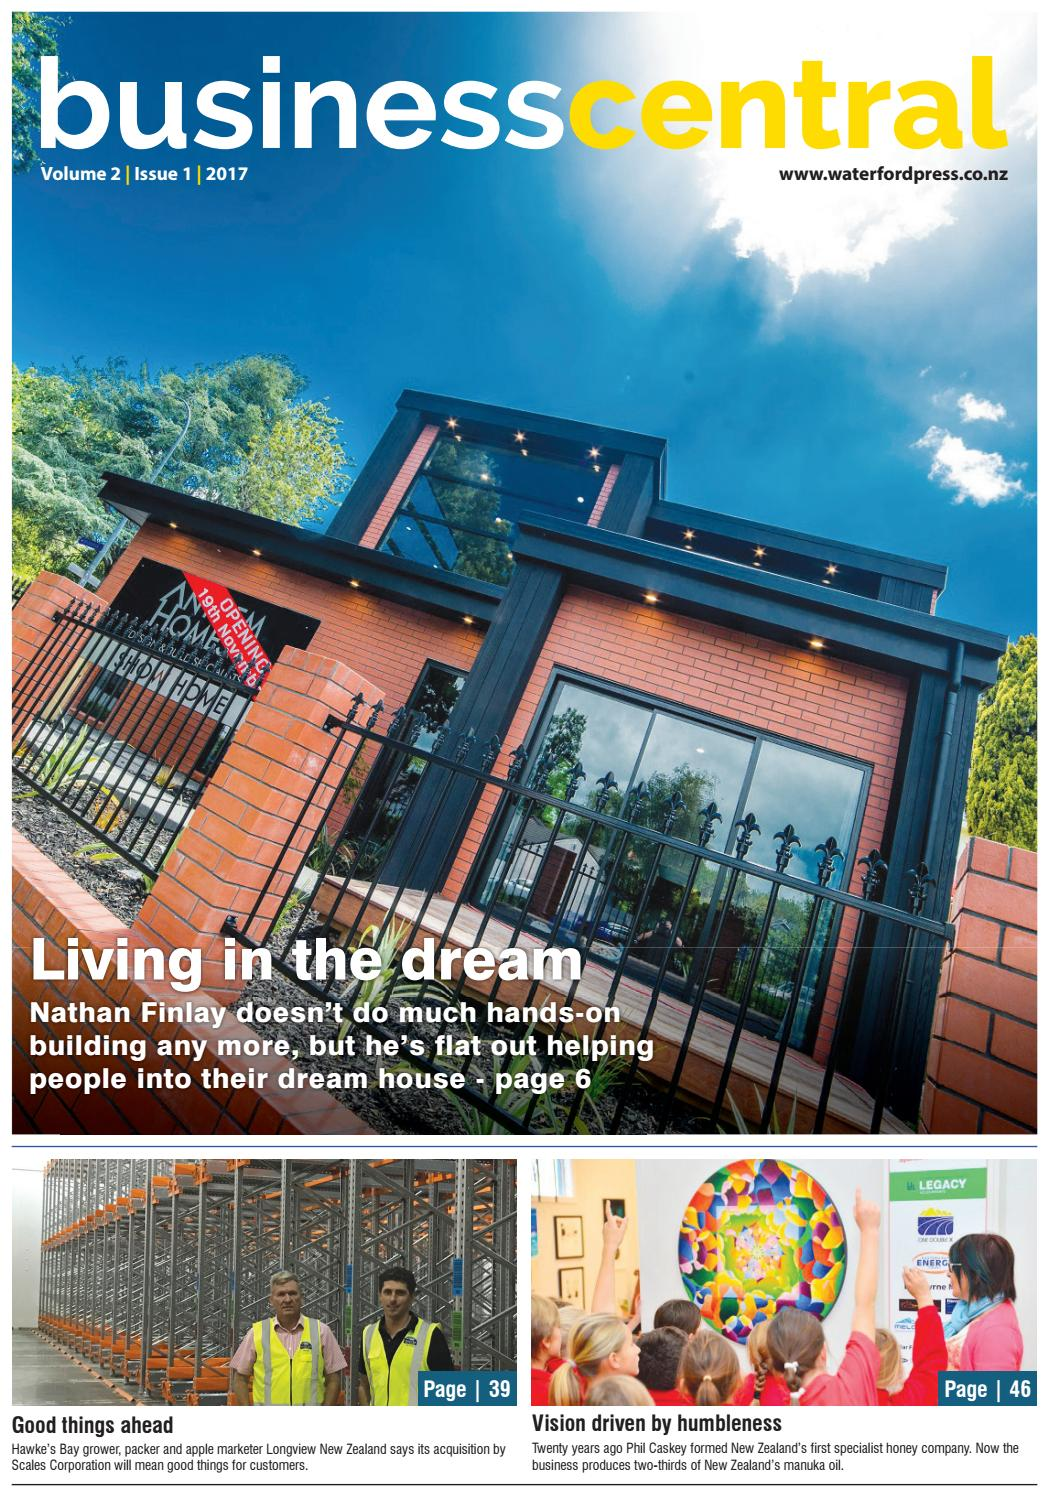 Business Central Autumn 2017 by Waterford Press Limited - issuu